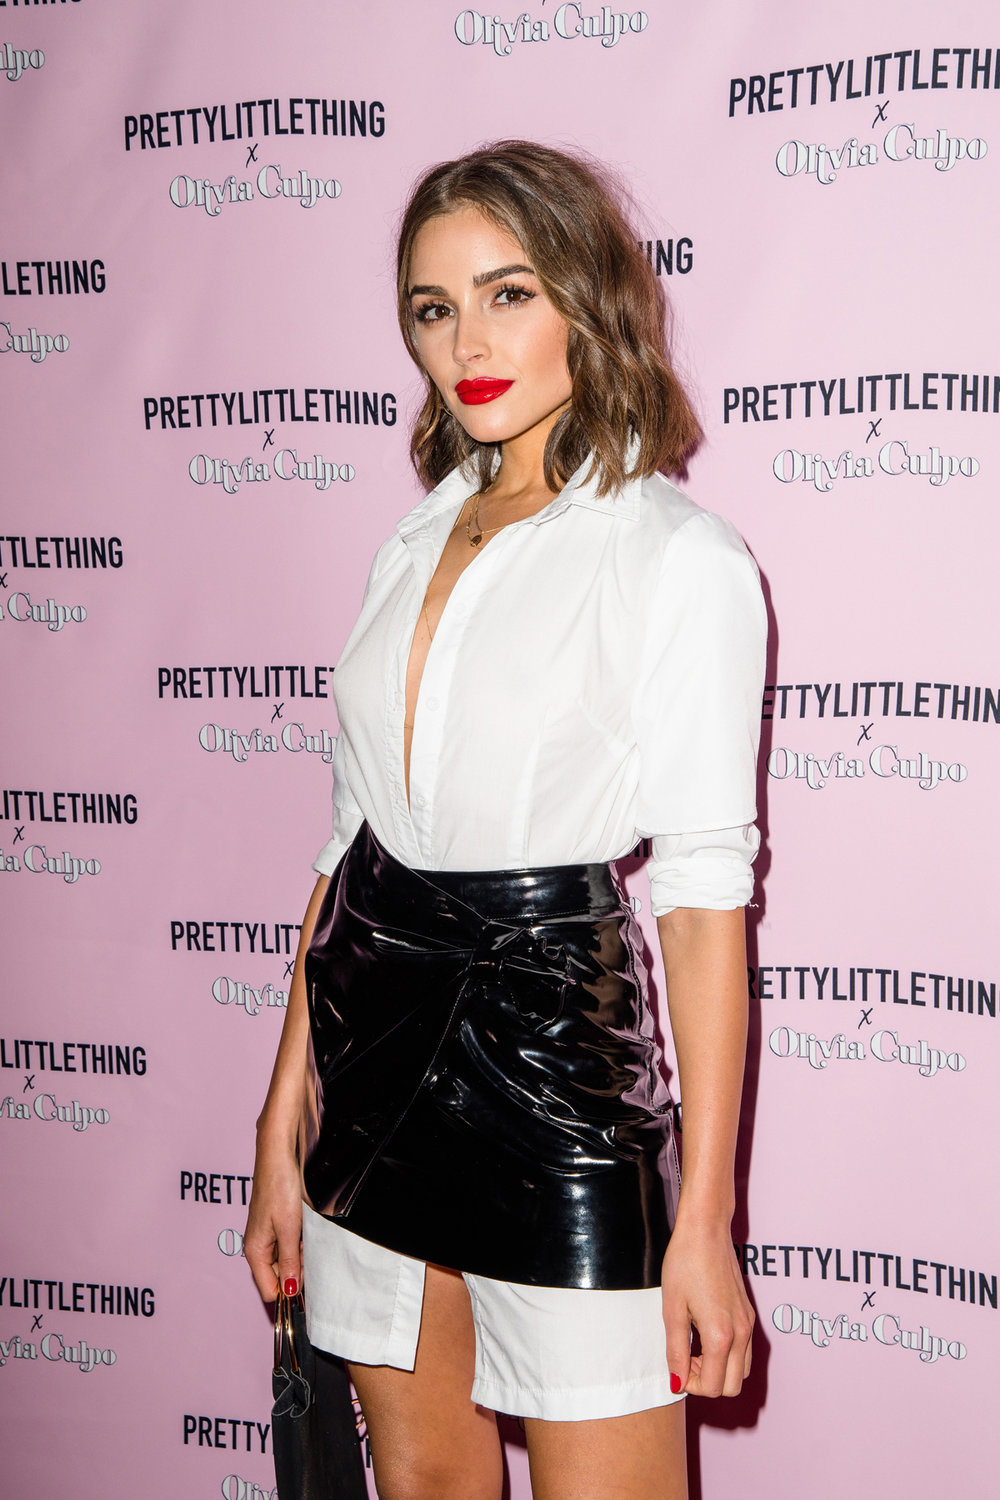 PrettyLittleThing PLT X Olivia Culpo Collection  Celebrity Launch Party Olivia Culpo.jpg